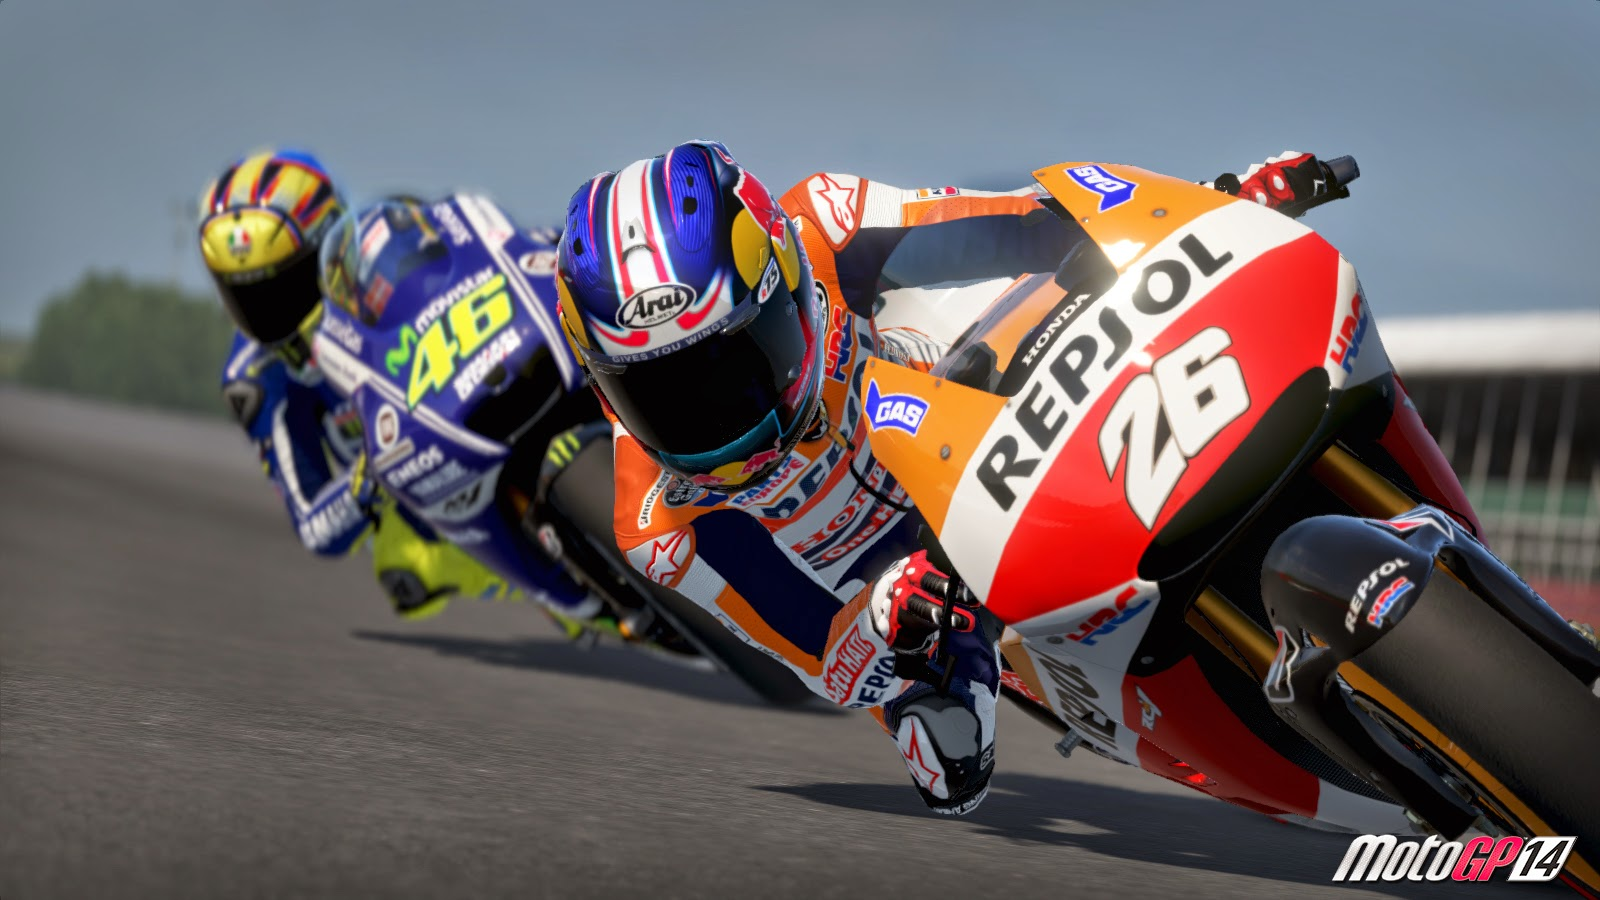 download free motogp pc game highly compressed